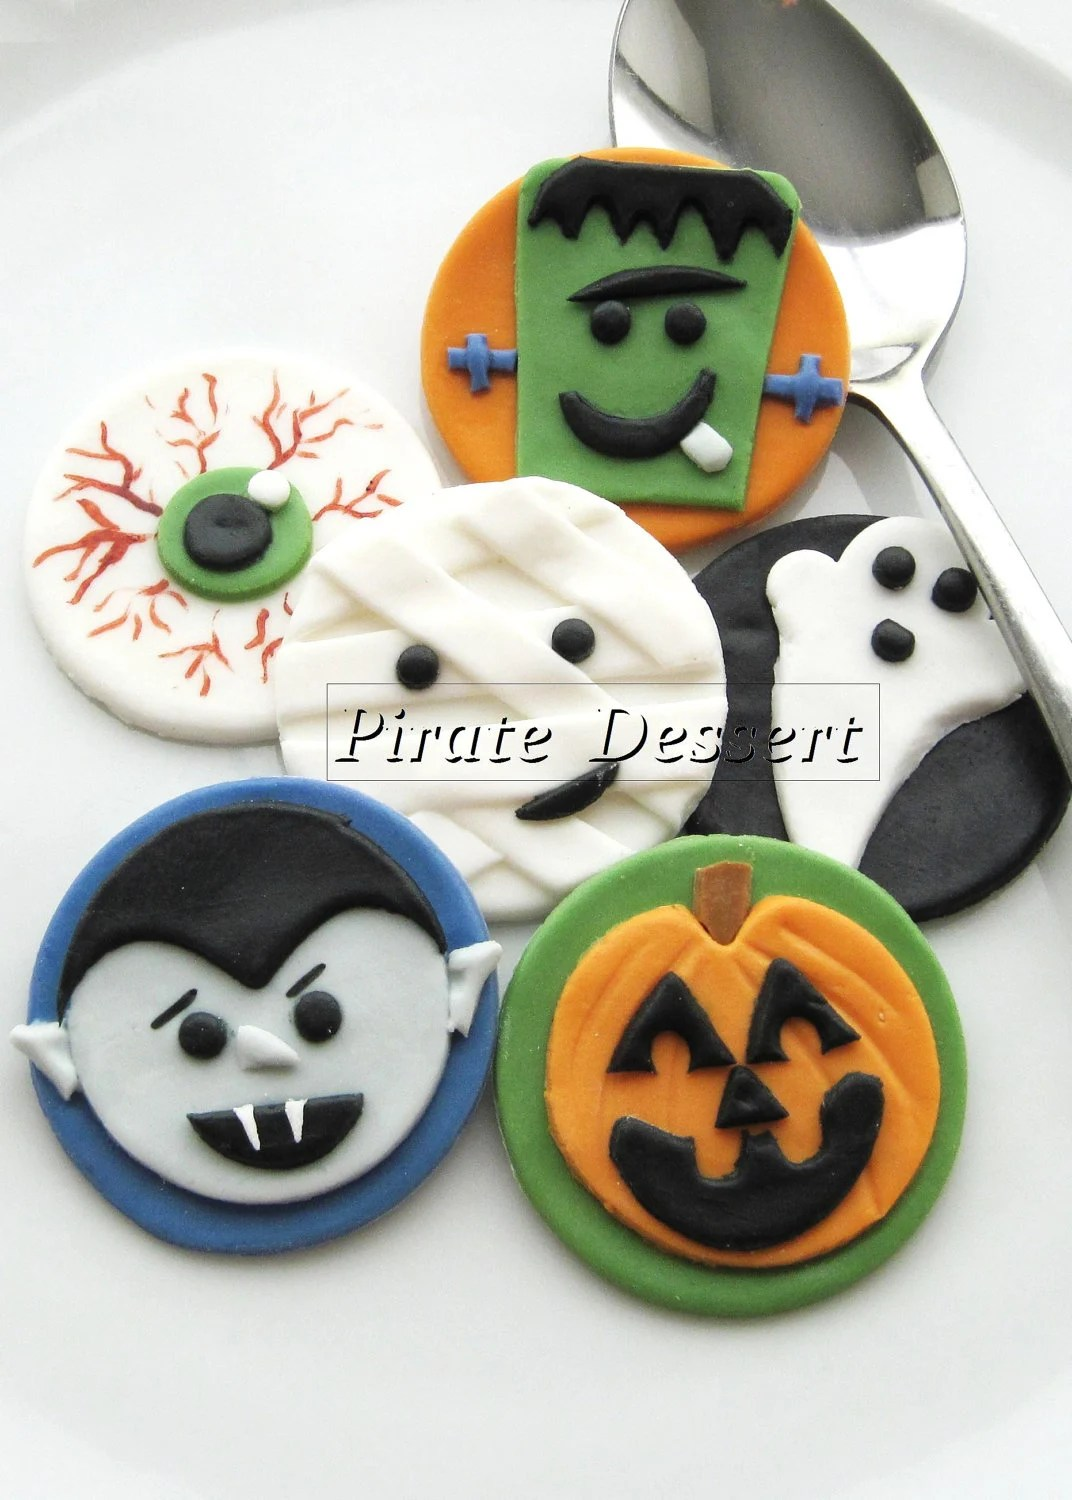 Edible Halloween cupcake toppers - MONSTERS - Fondant cake decorations Halloween Cupcakes  (6 pieces)